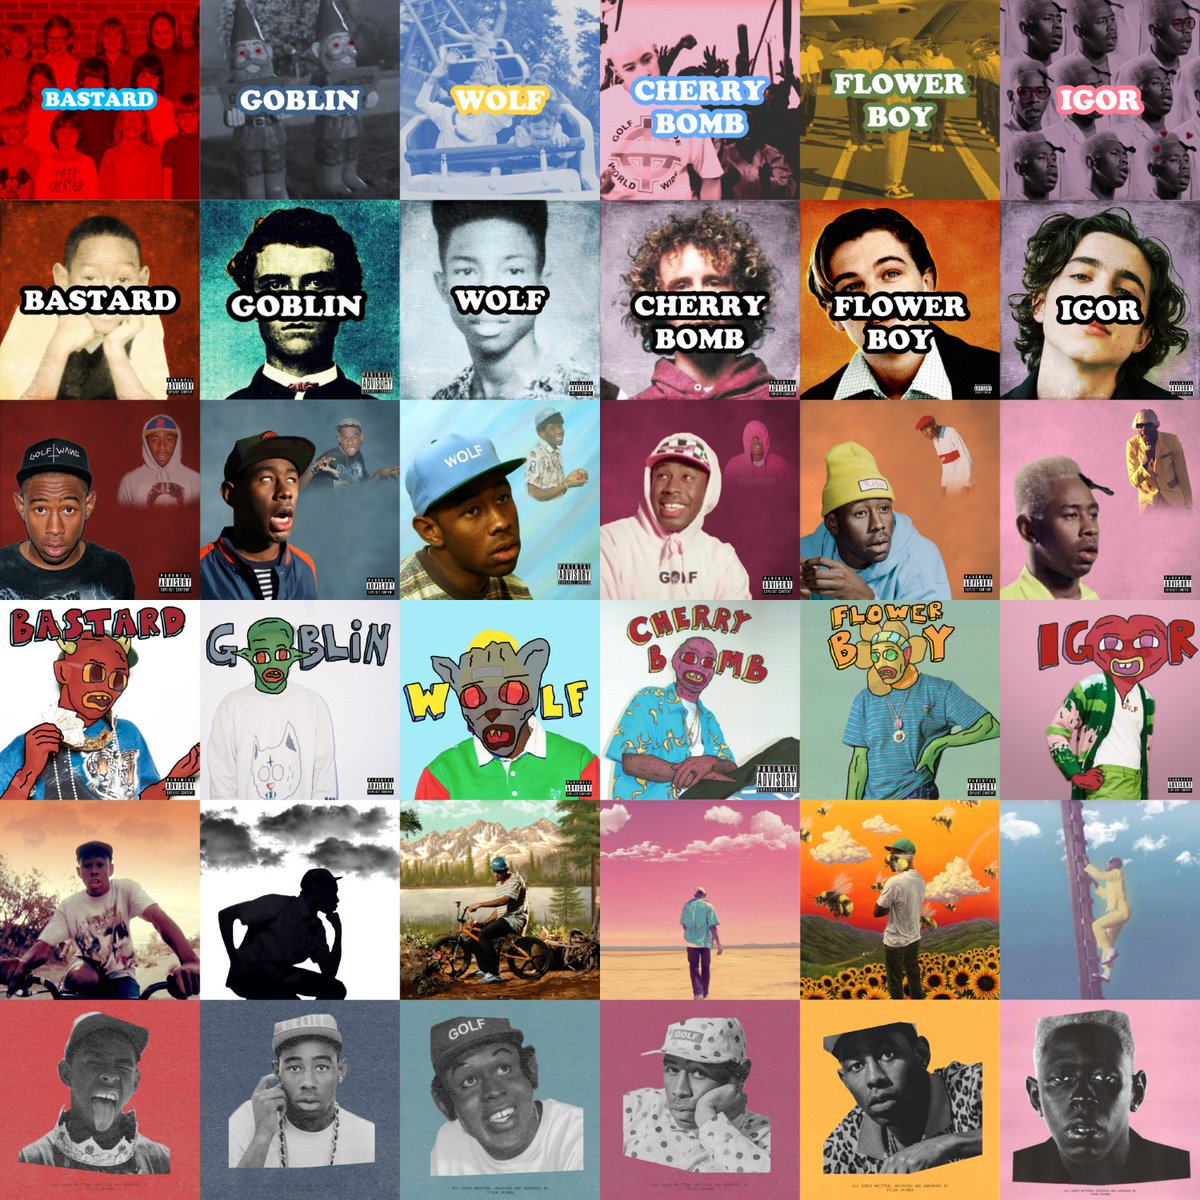 Rosie On Twitter Every Tyler The Creator Album Cover In The Style Of Every Other Tyler The Creator Album Cover Igor